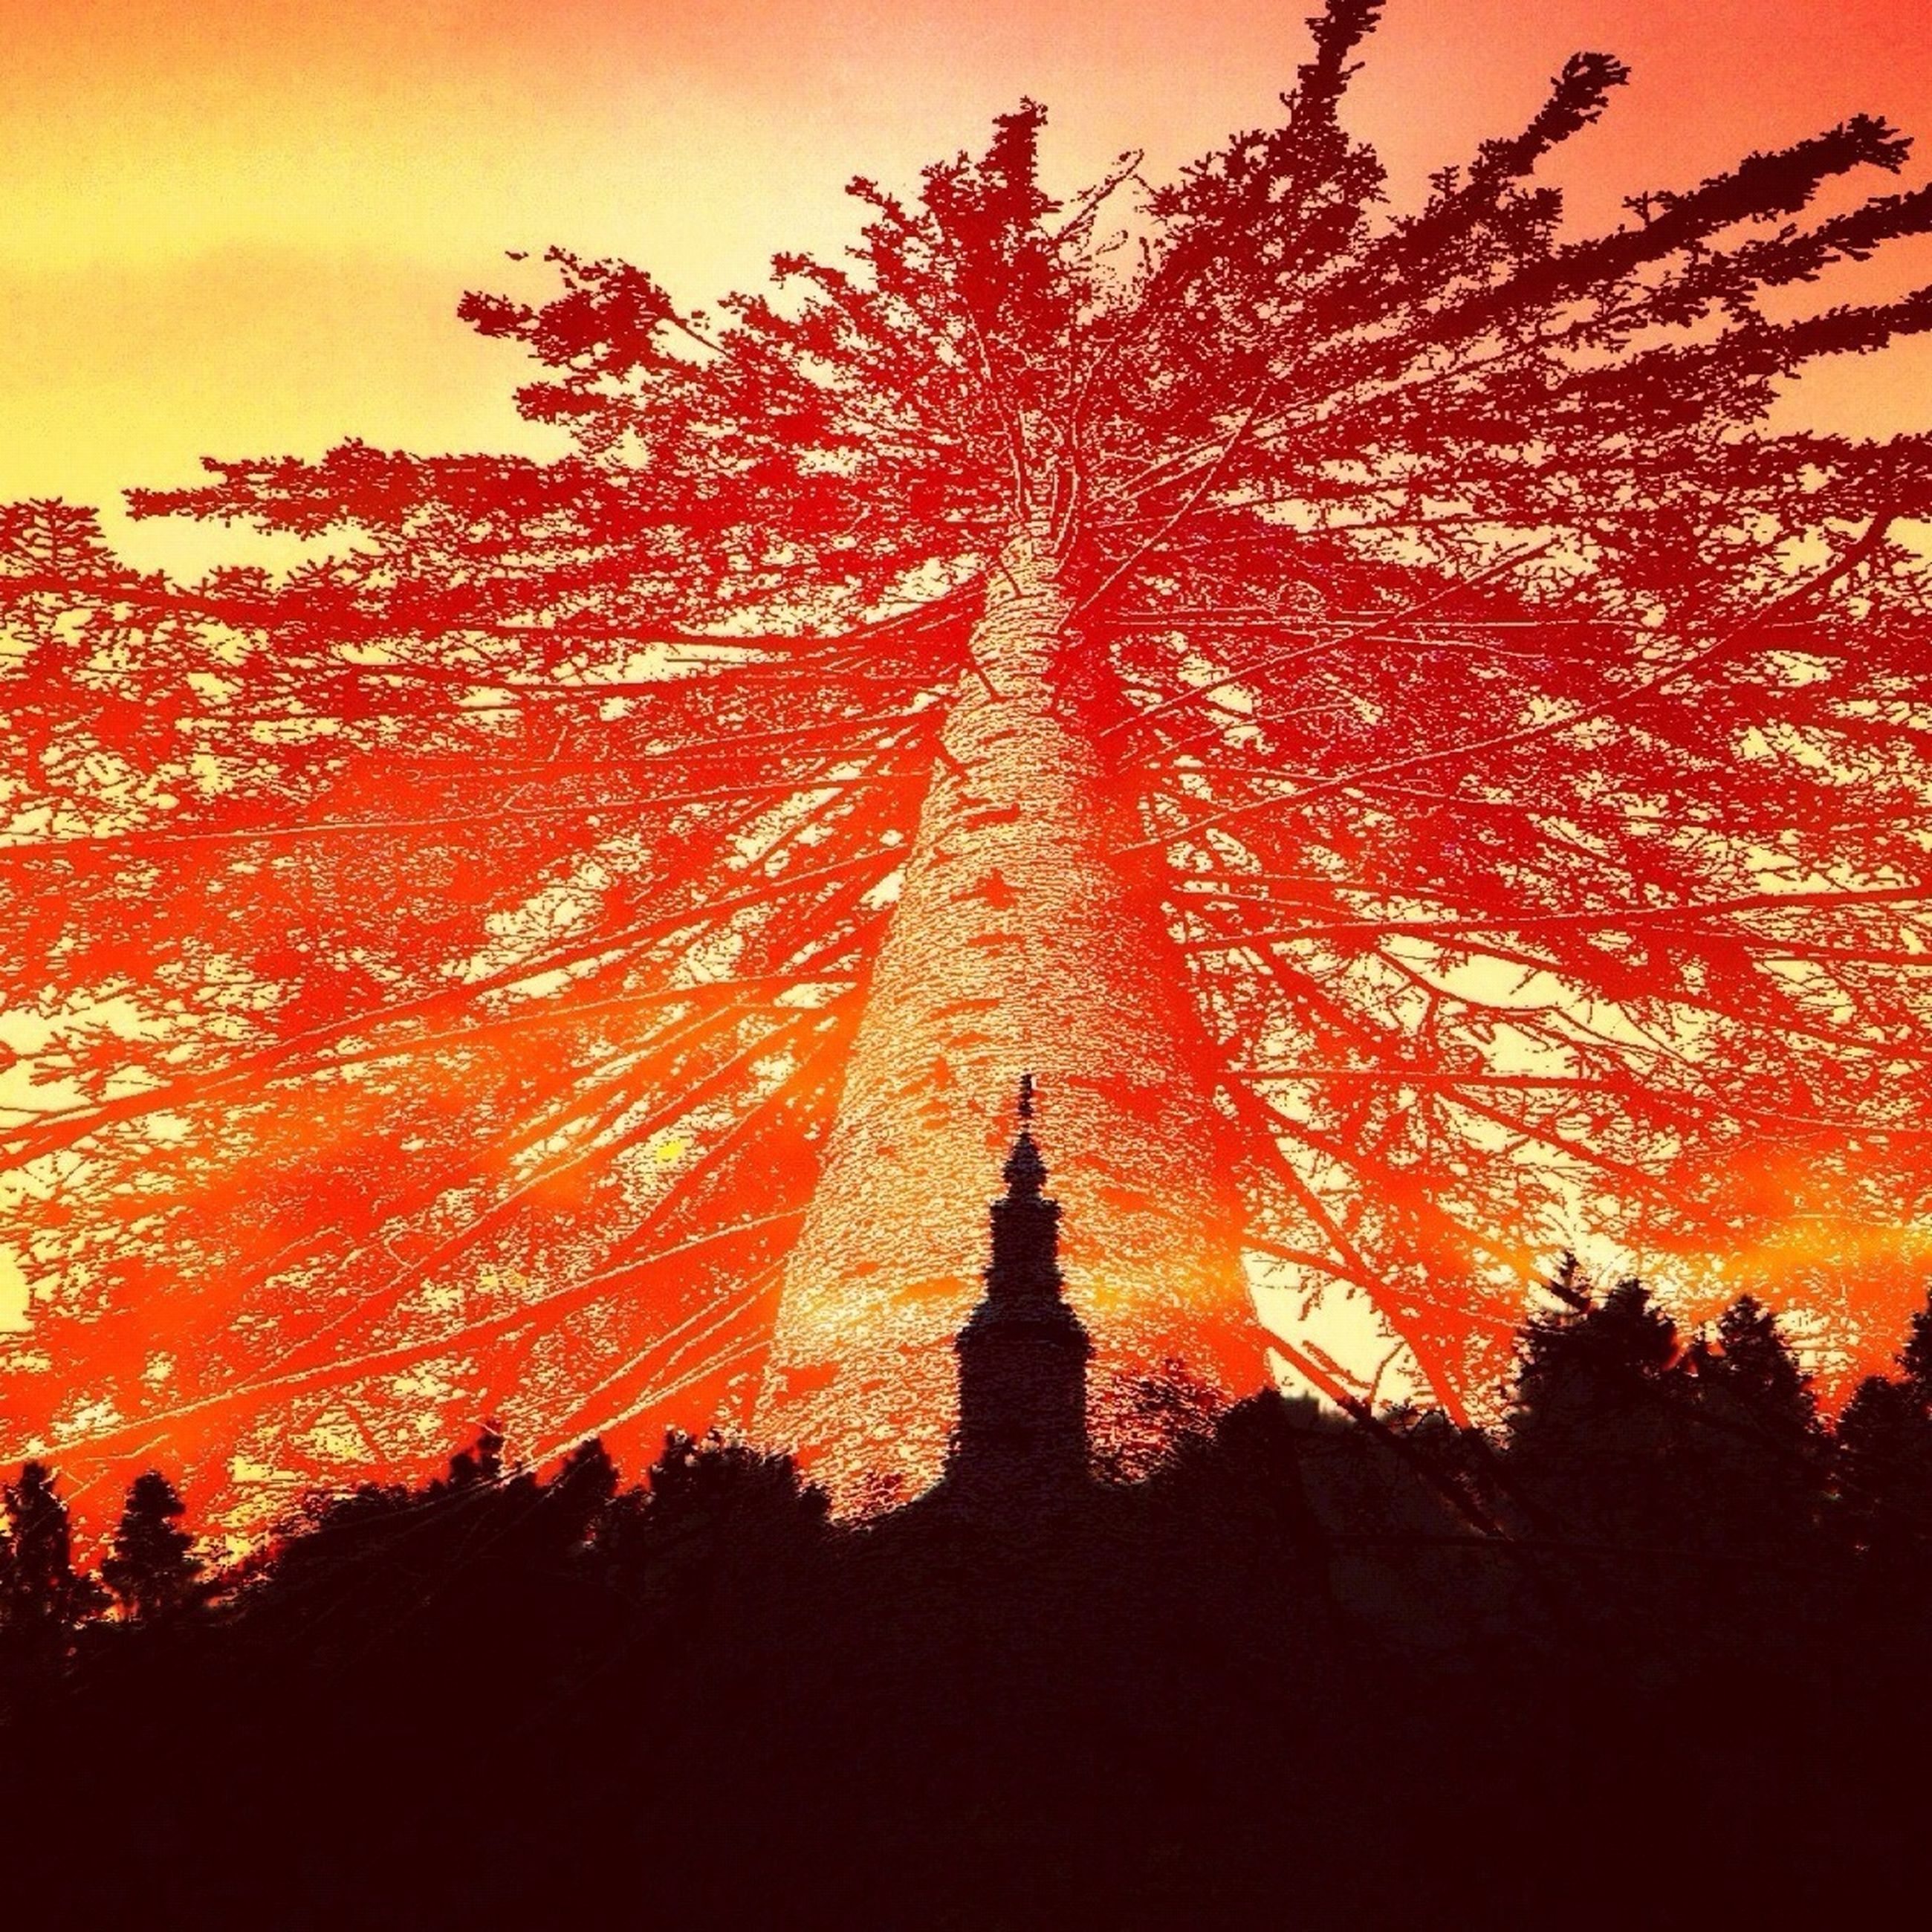 sunset, orange color, silhouette, tree, beauty in nature, tranquility, nature, low angle view, scenics, growth, sky, sun, tranquil scene, idyllic, outdoors, no people, sunlight, back lit, red, branch